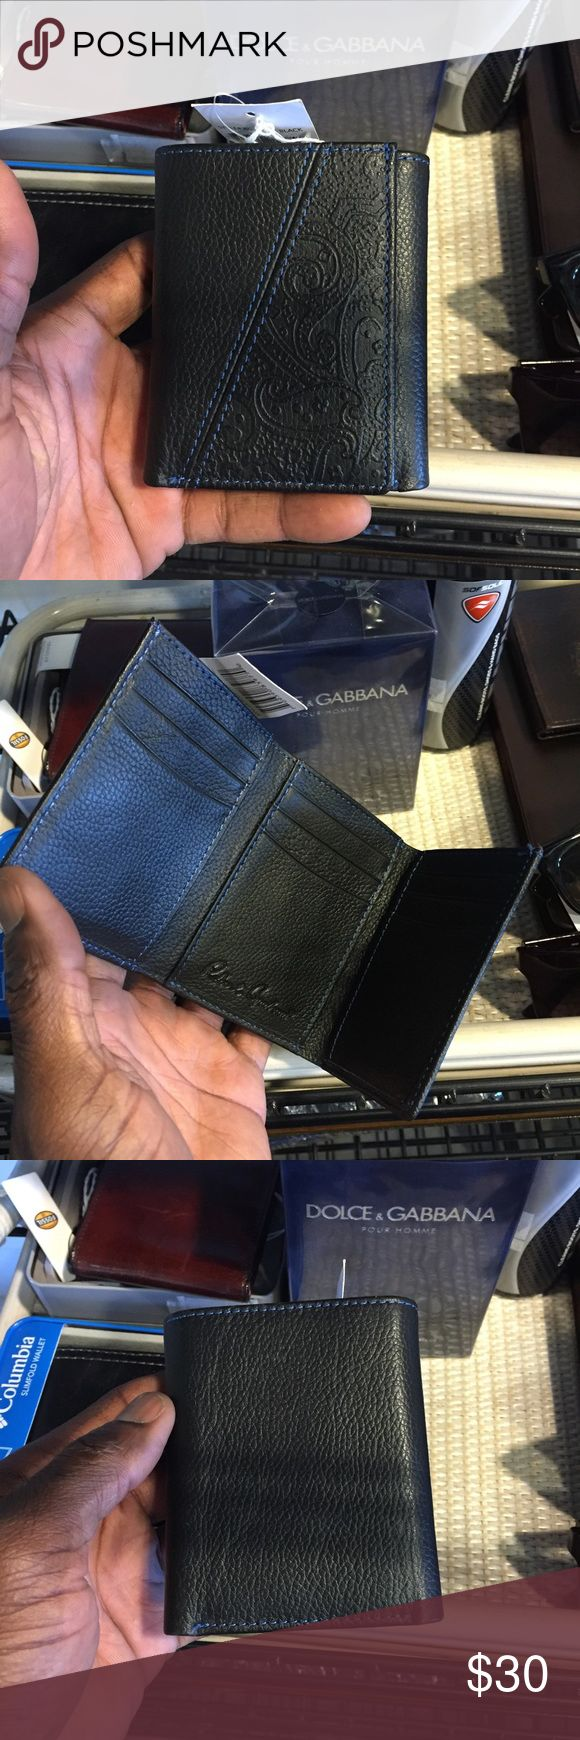 """New Robert Graham Leather Trifold Black Wallet Actual wallet in my men's accessories store in Las Vegas. Store pickup available.  3 1/4"""" L x 4"""" L x 3/4"""" W Tri-fold construction, leather exterior, paisley embossed detail, black. Robert Graham Bags Wallets"""